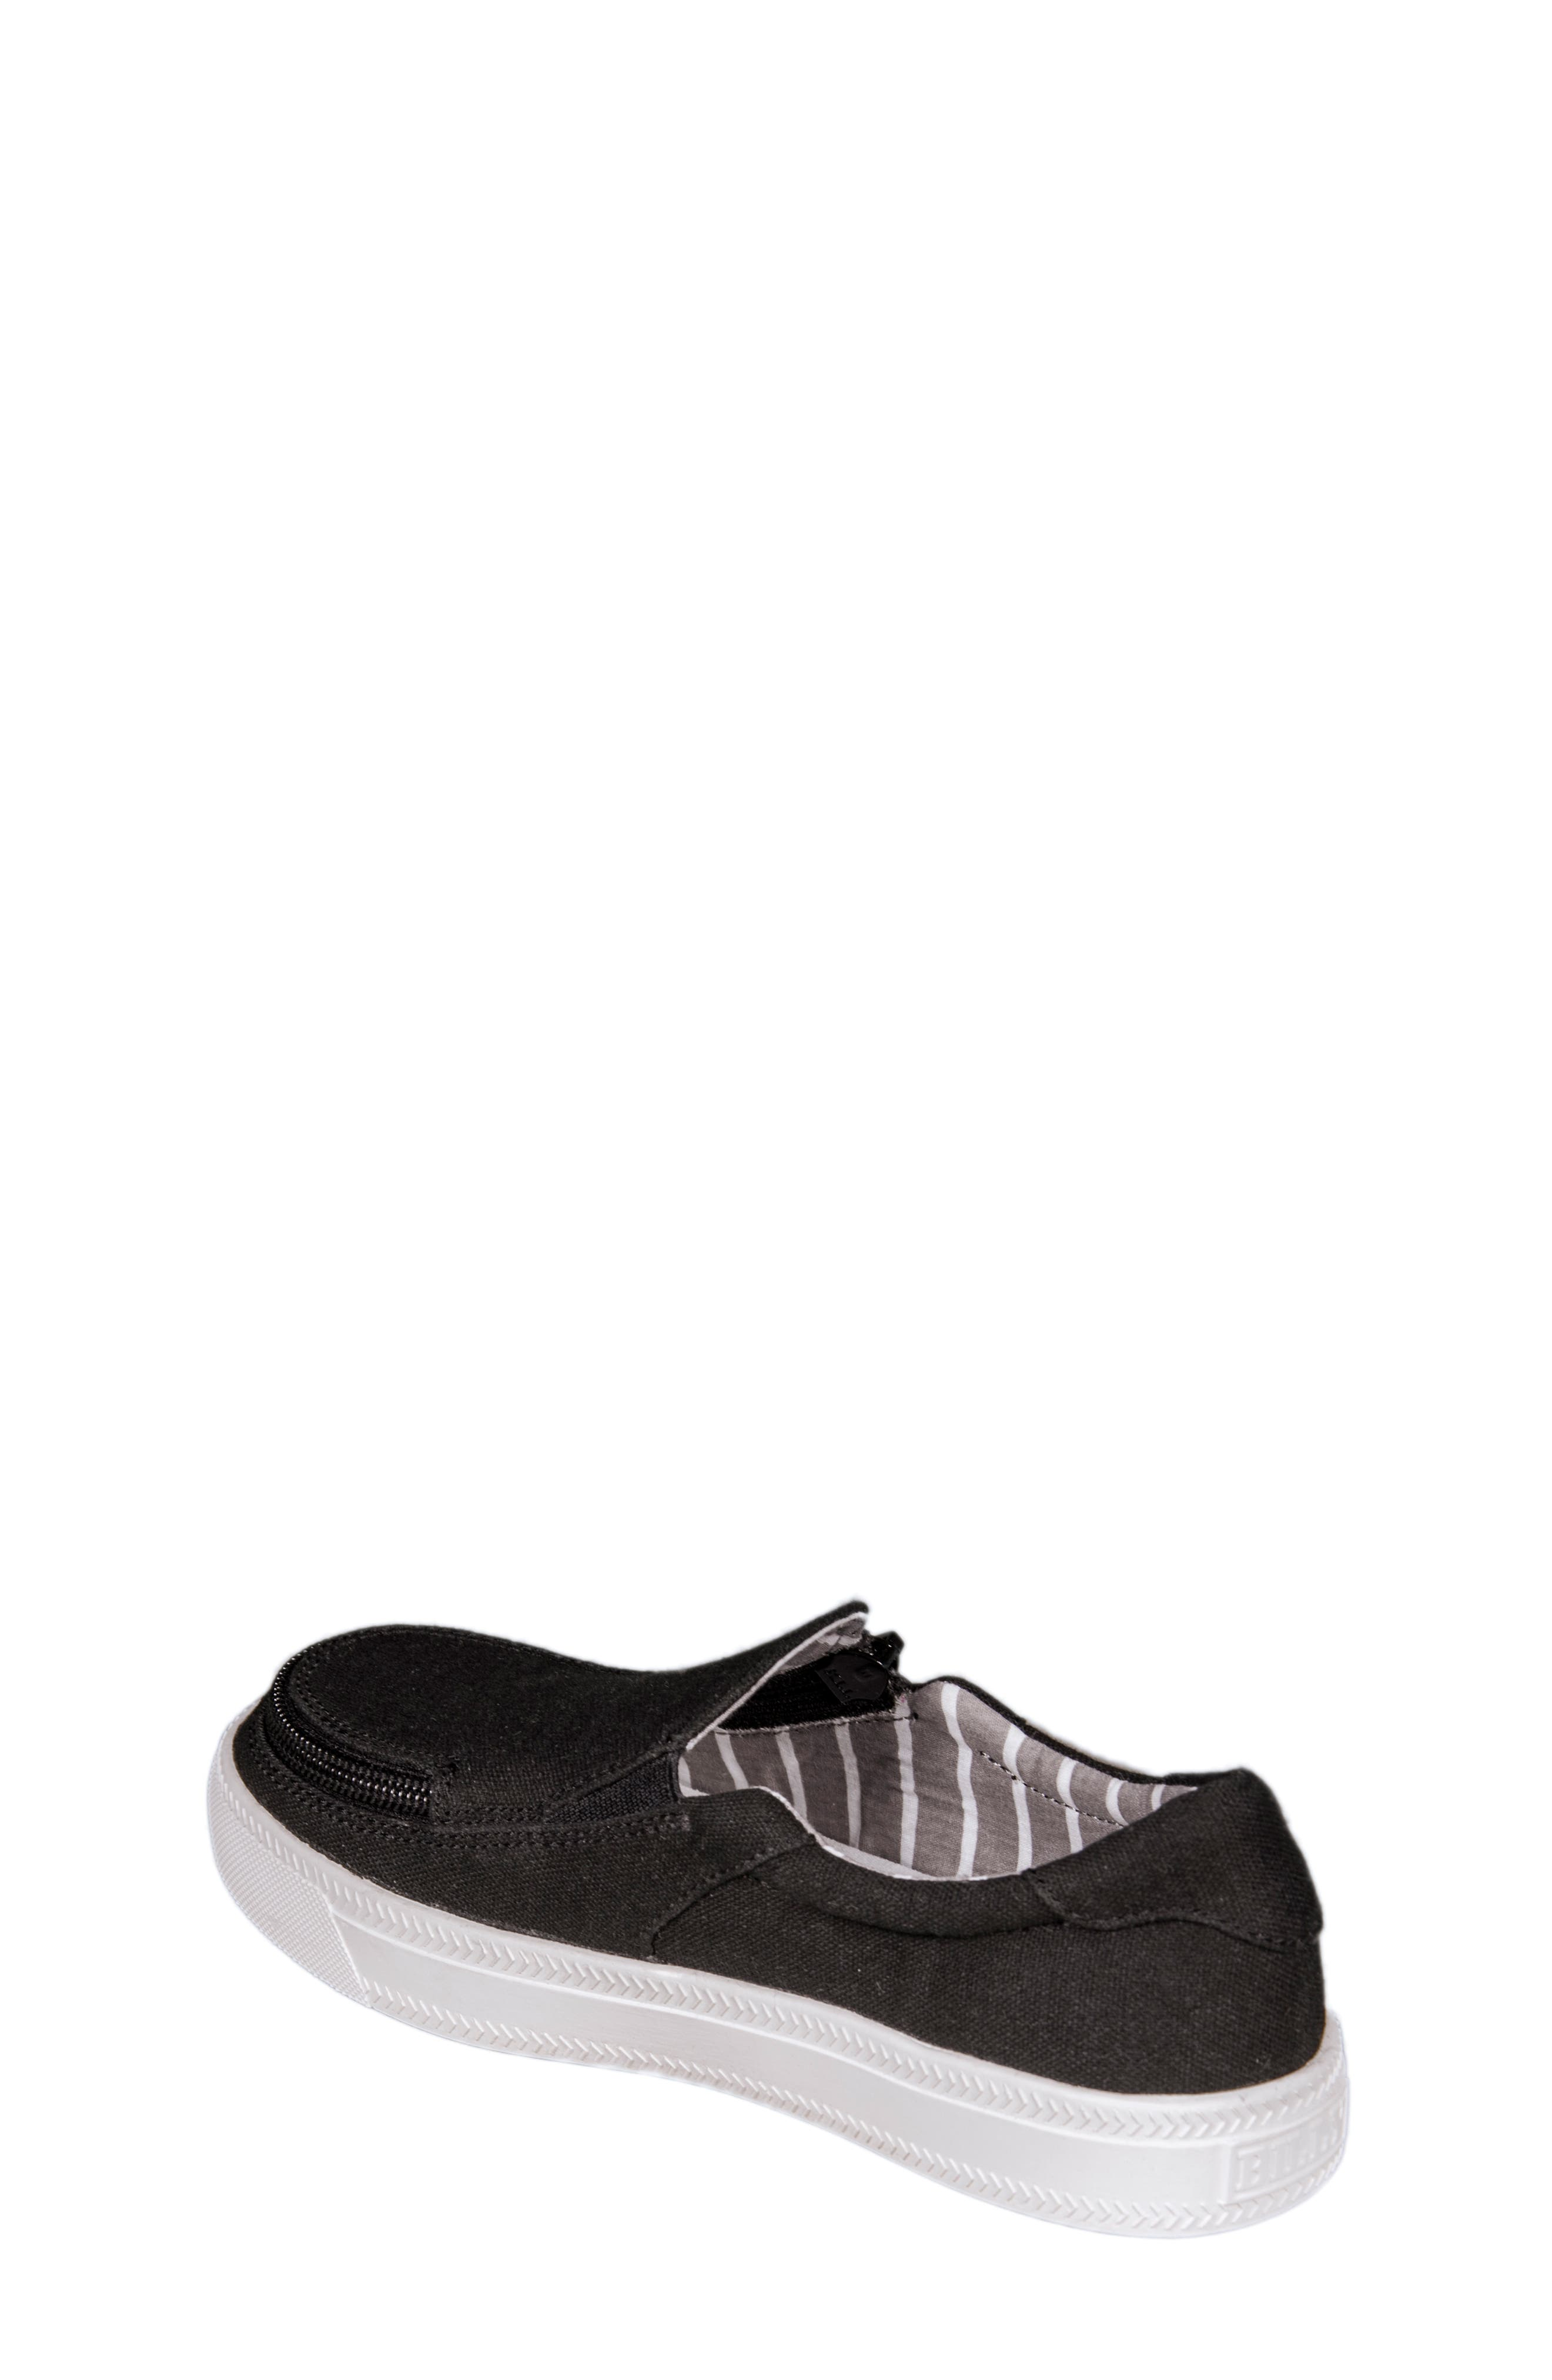 Zip Around Low Top Sneaker,                             Alternate thumbnail 3, color,